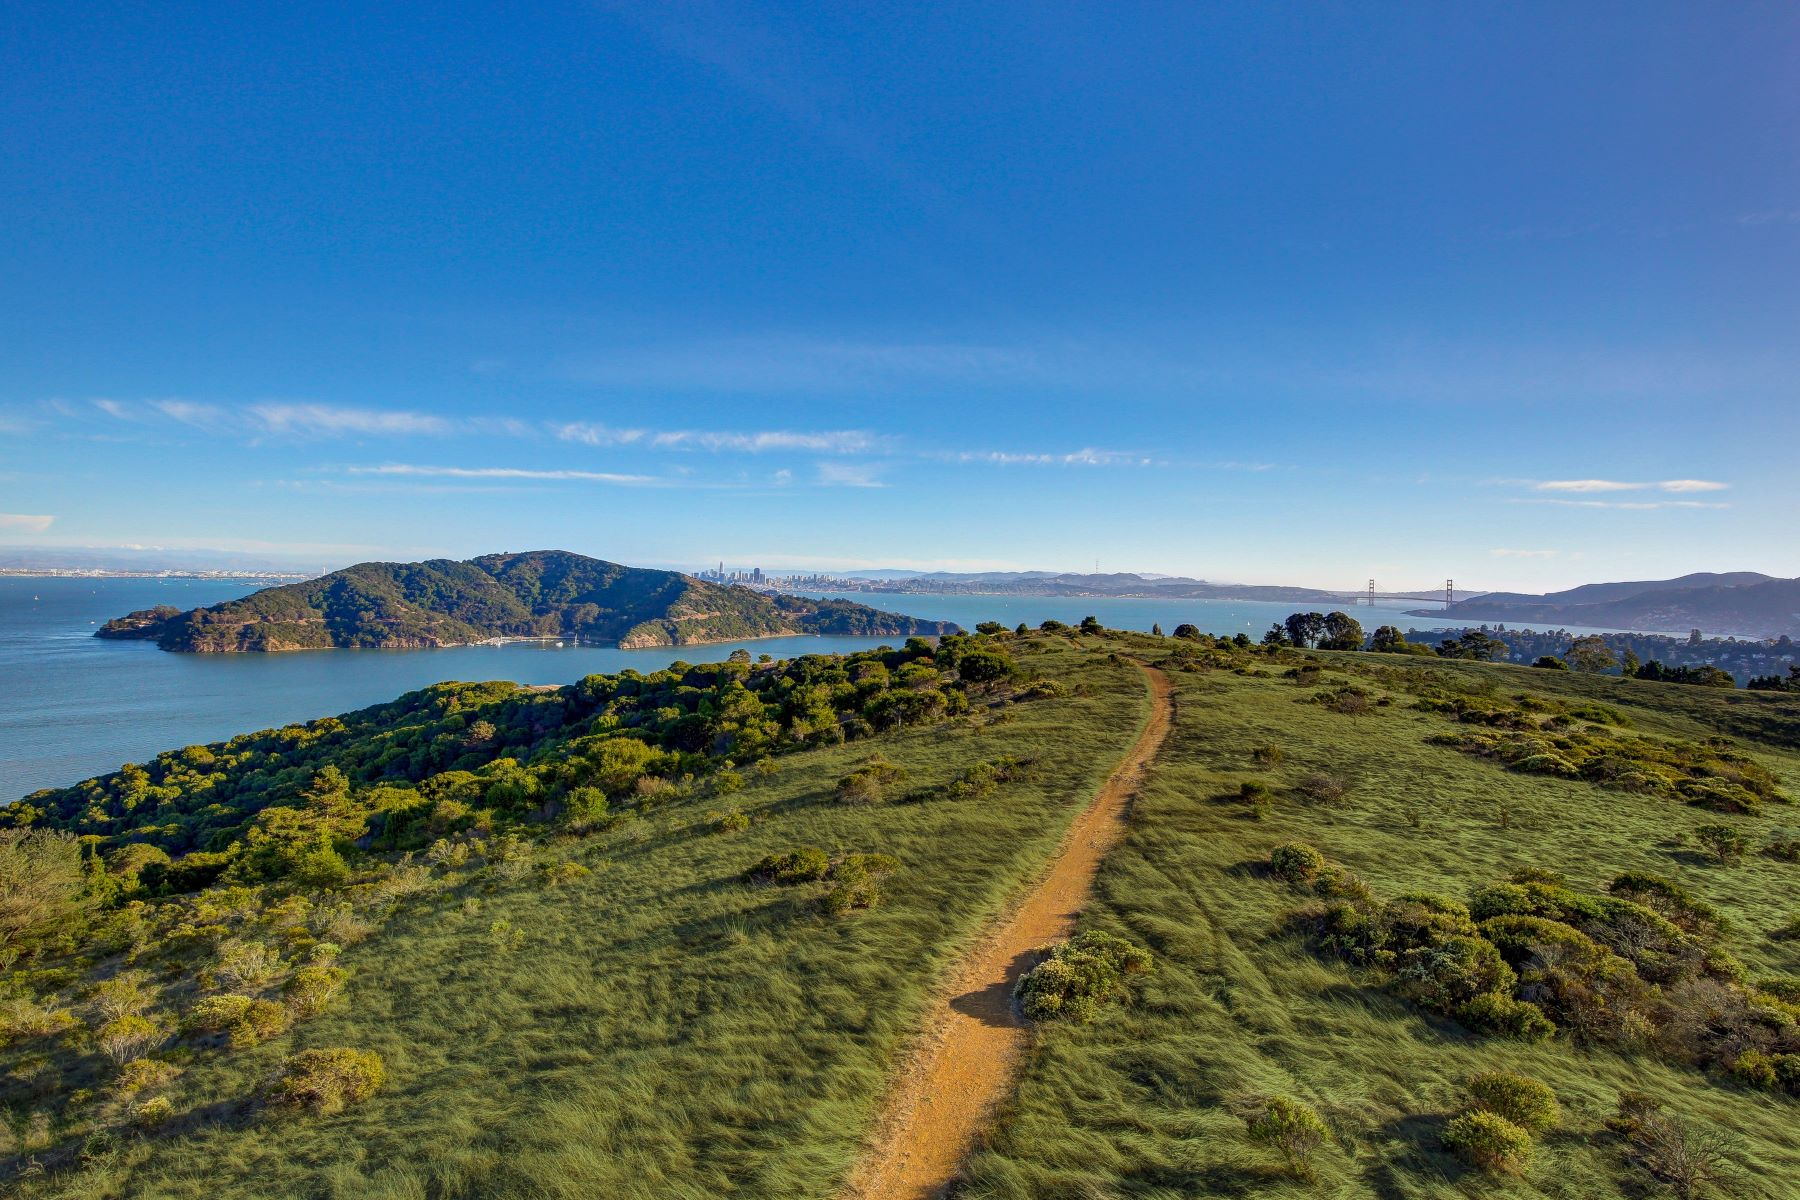 Property for Sale at Tiburon, California 94920 United States